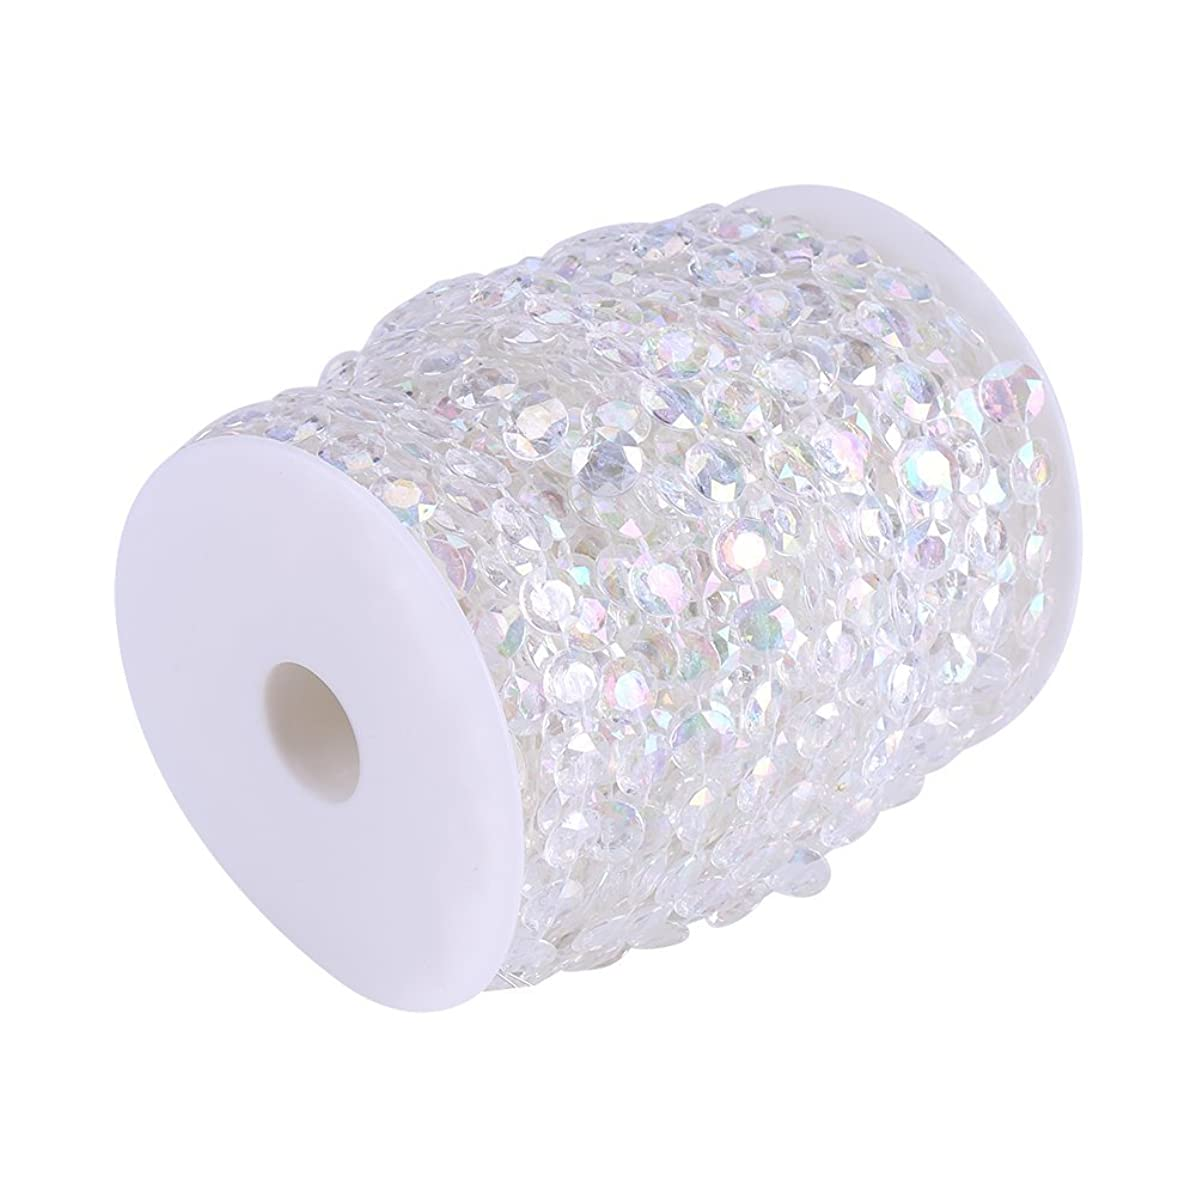 30m/98ft Crystal-Like Acrylic Beads Strands,10mm Clear/AB Color Crystal Gem Bead Curtain Doorway Wedding Birthday Party Decorations DIY Crafts (AB Color)